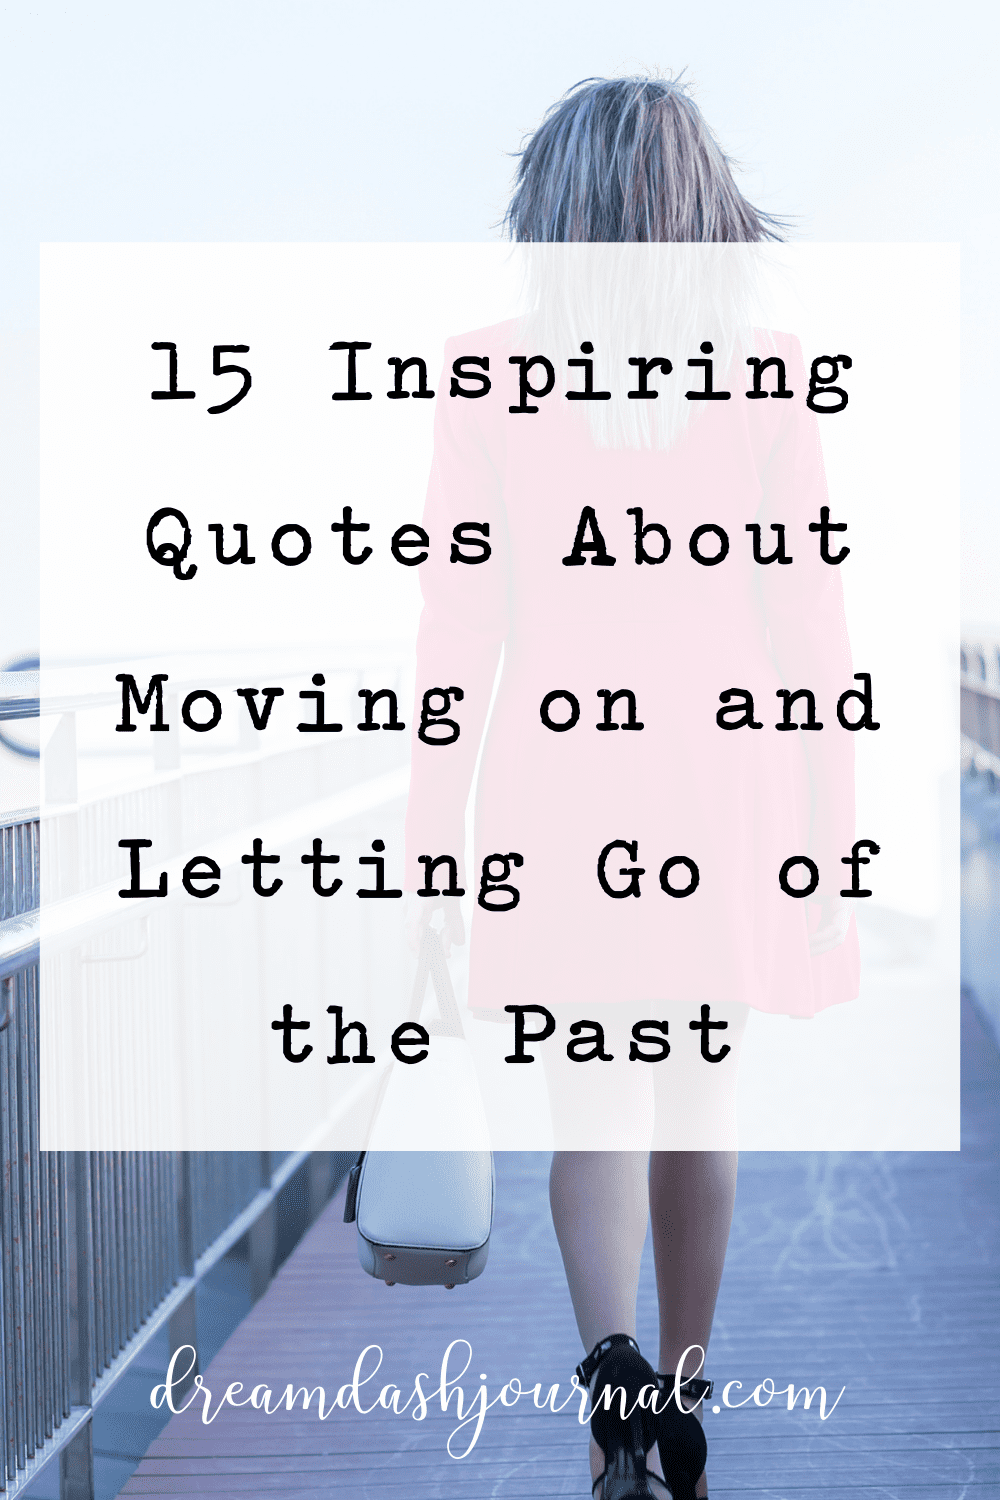 15 Inspiring Quotes About Moving on and Letting Go of the Past